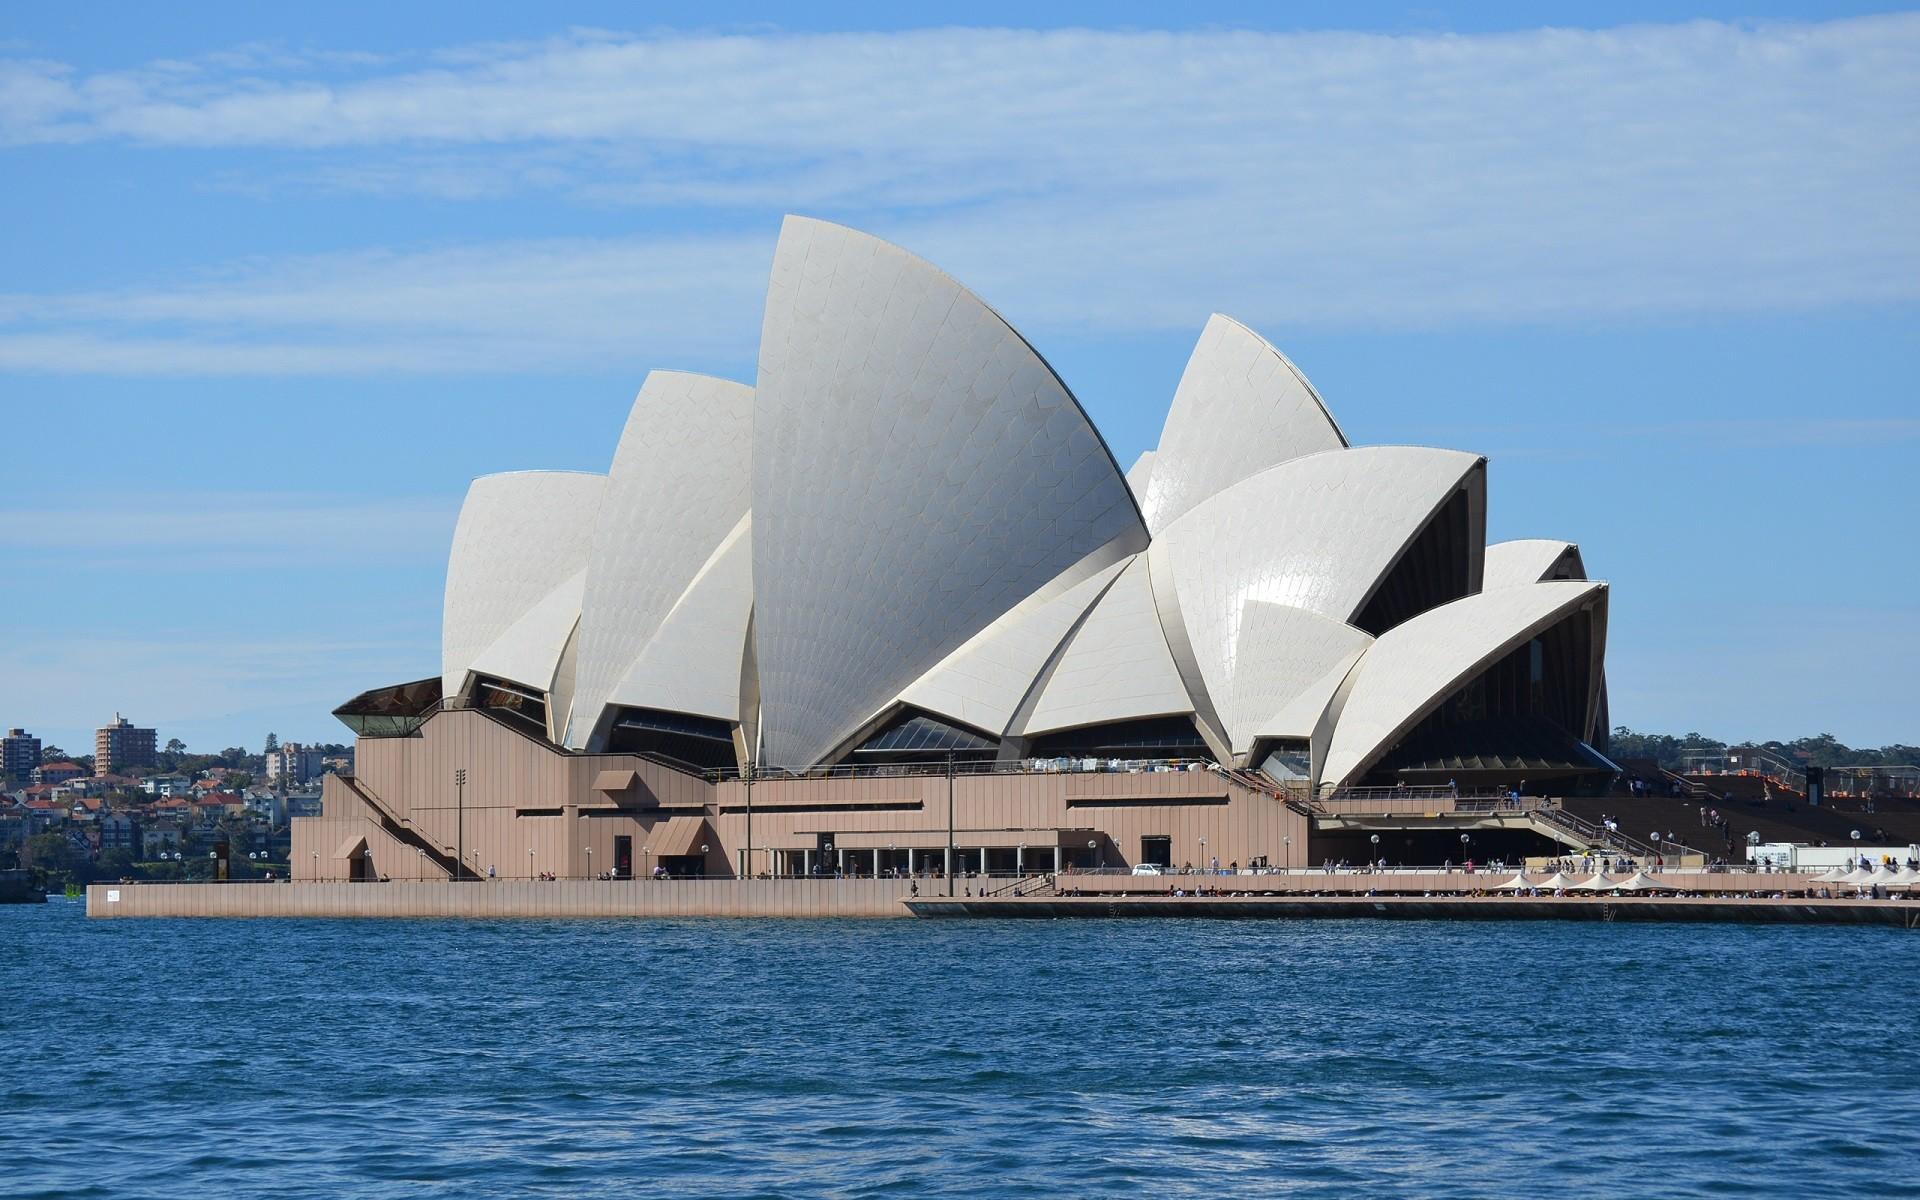 768188 sydney opera house wallpaper 1920x1200 for iphone 5s - Download Image Of The Sydney Opera House  Background